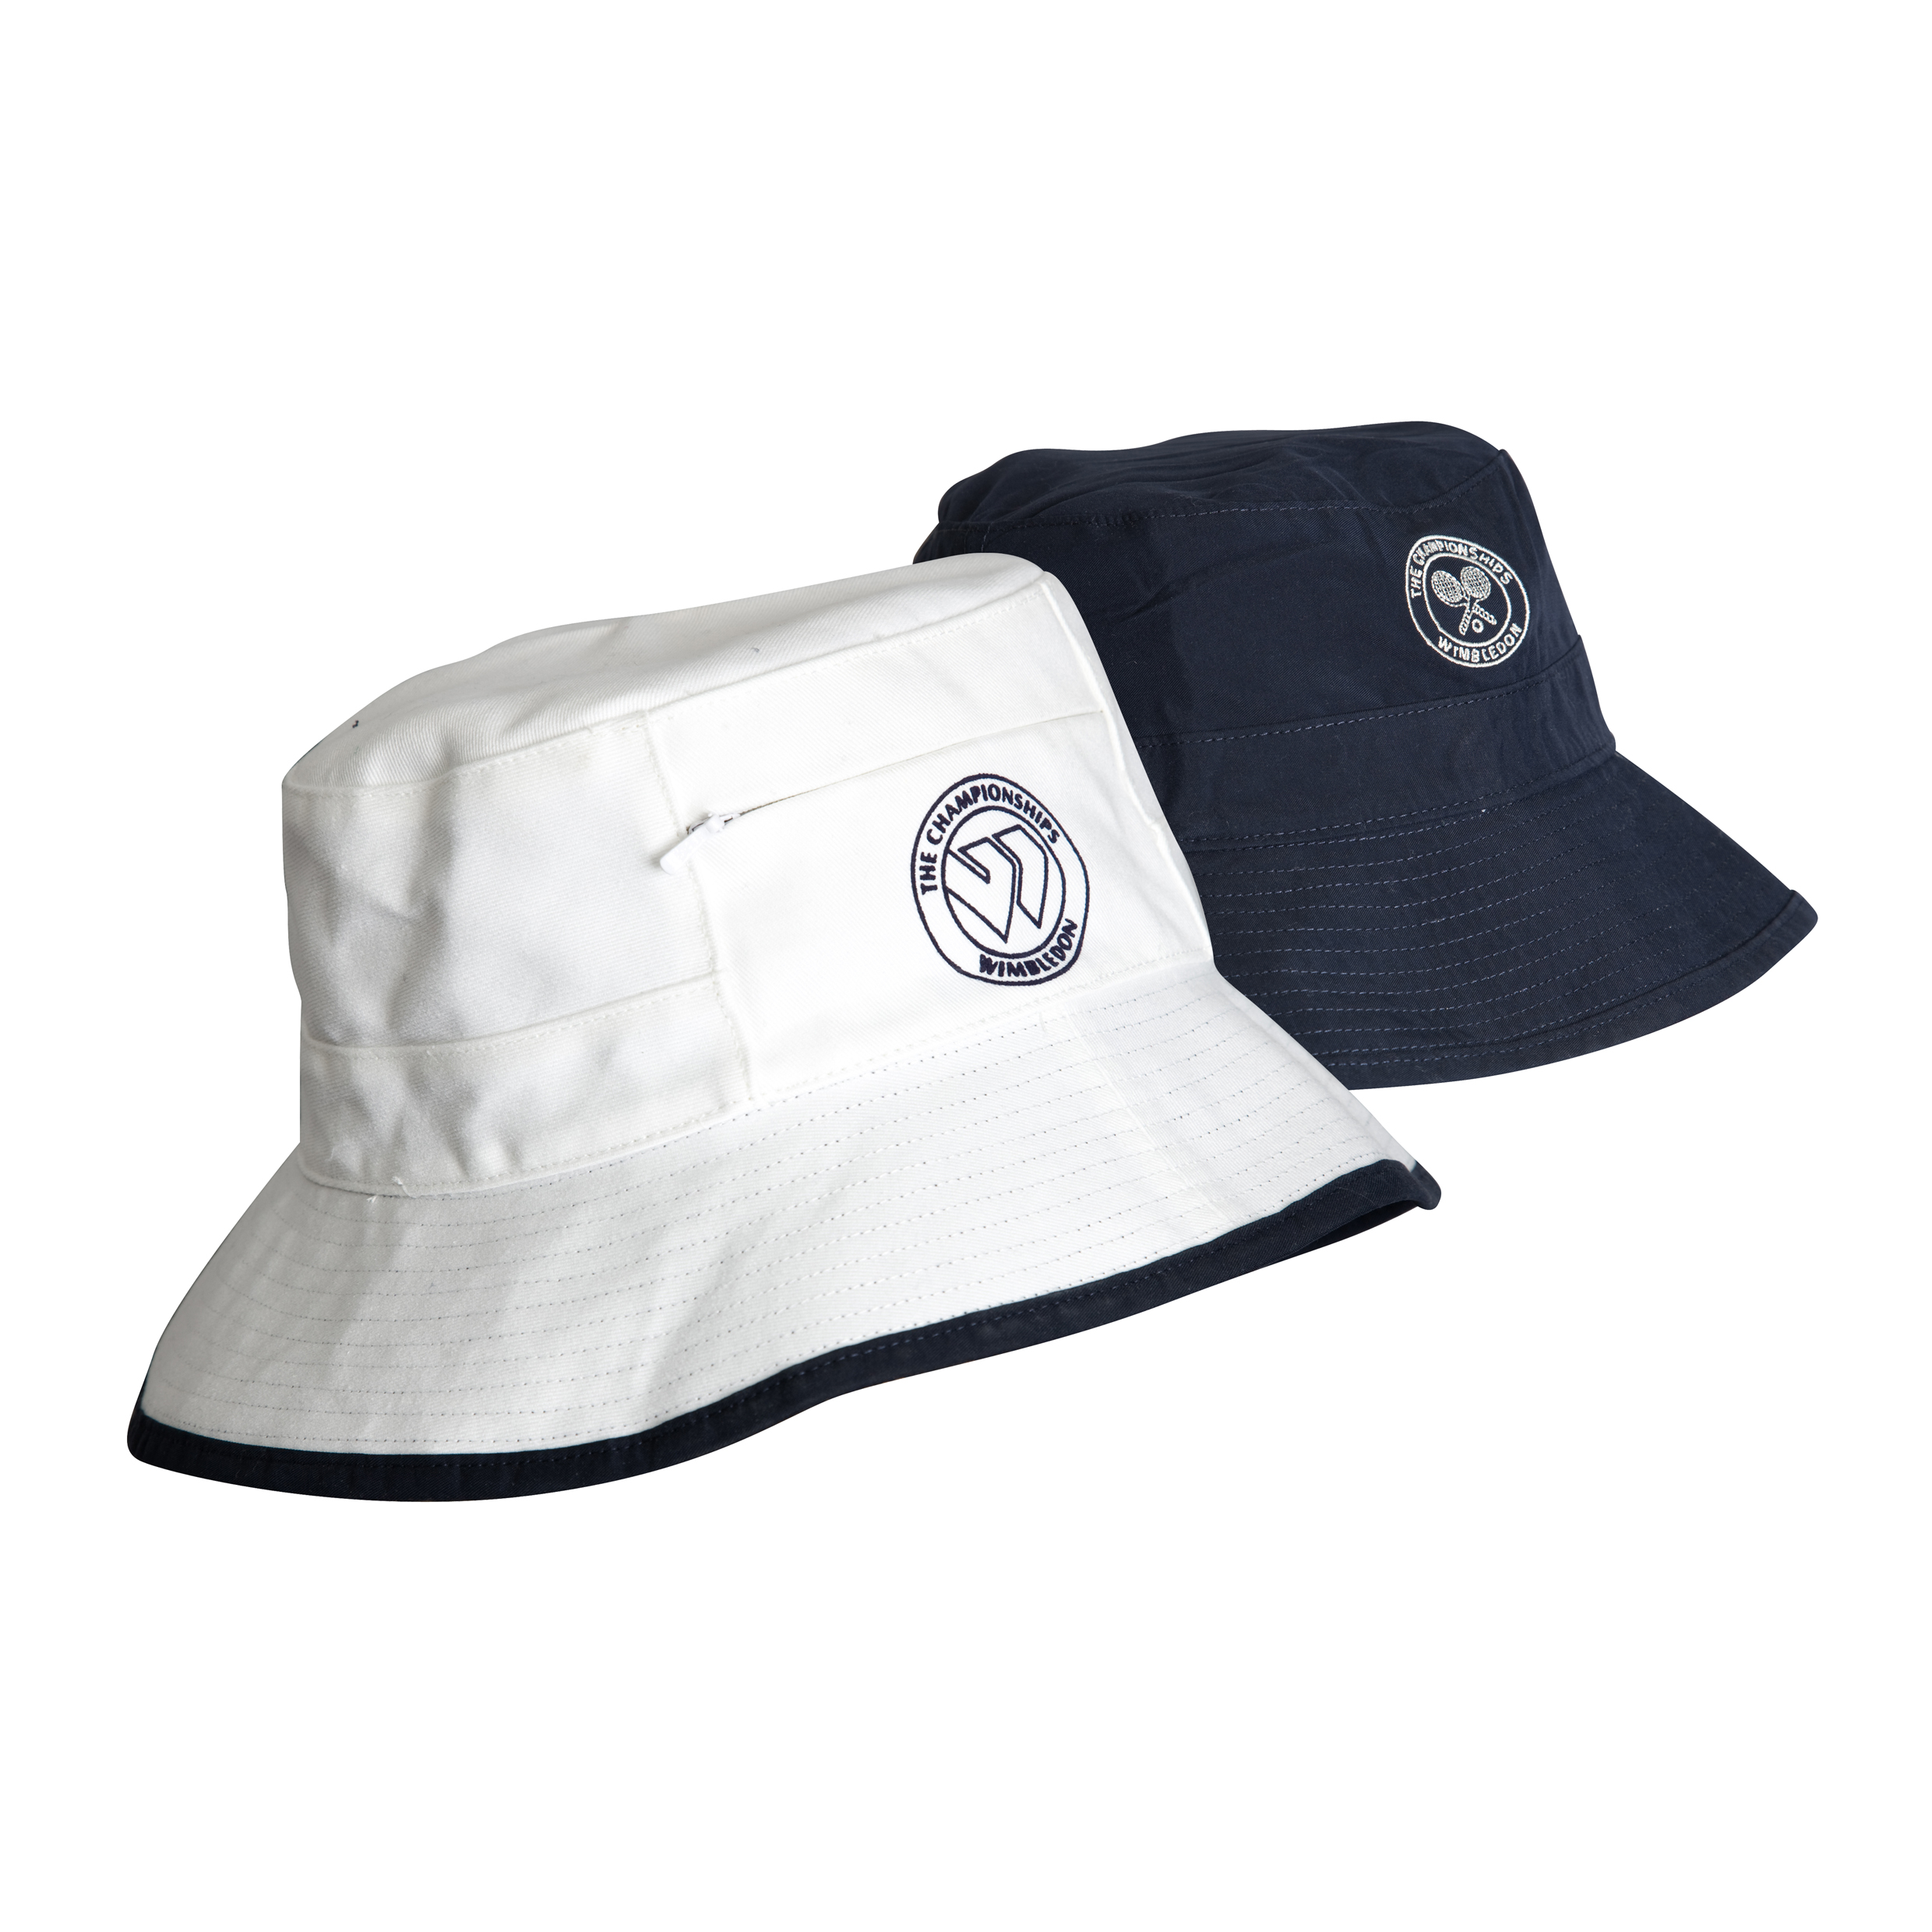 Wimbledon Reversible Sun Hat - White/Navy